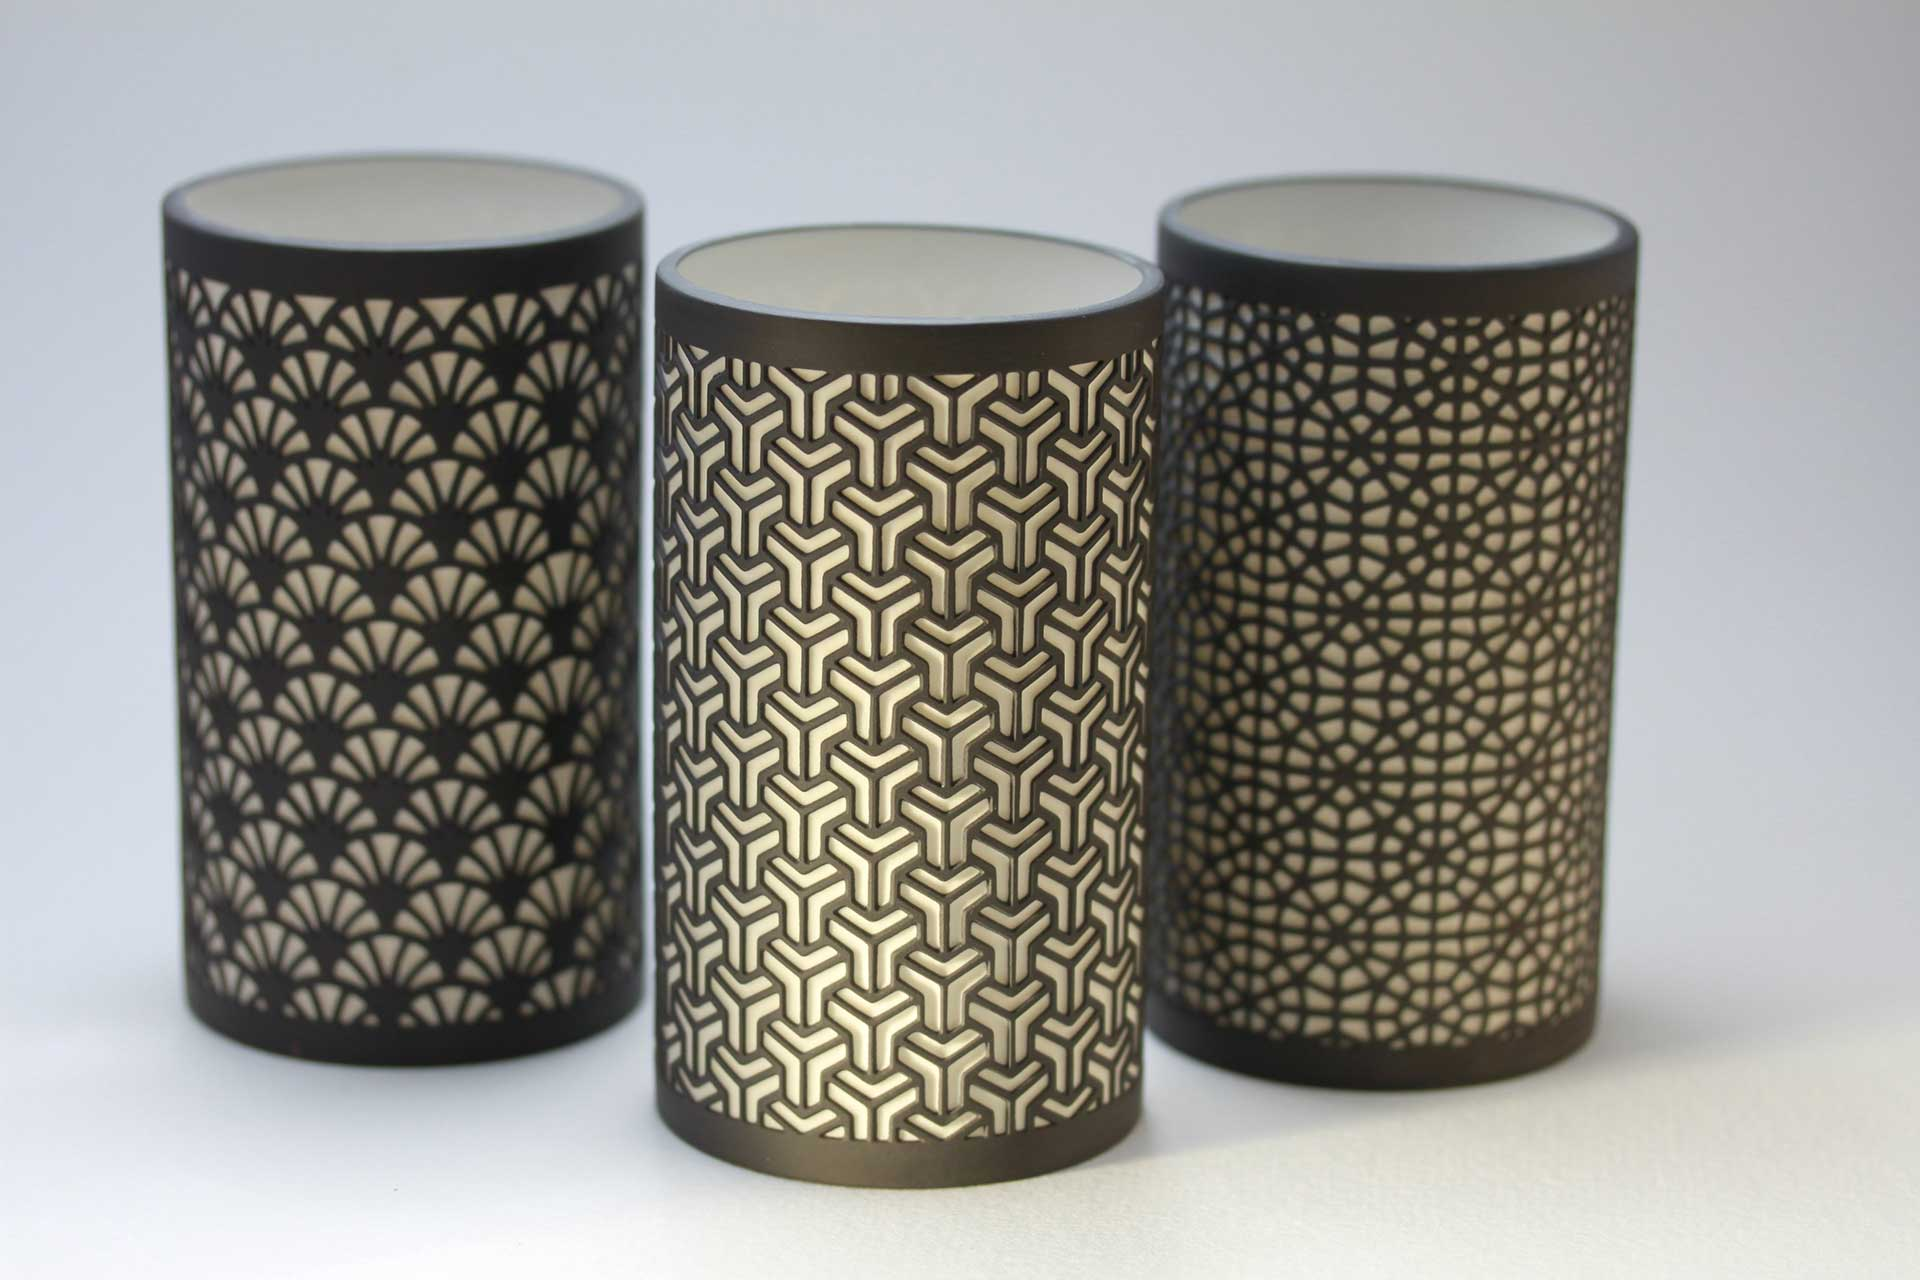 geometric patterned home decor cylinders on a white background